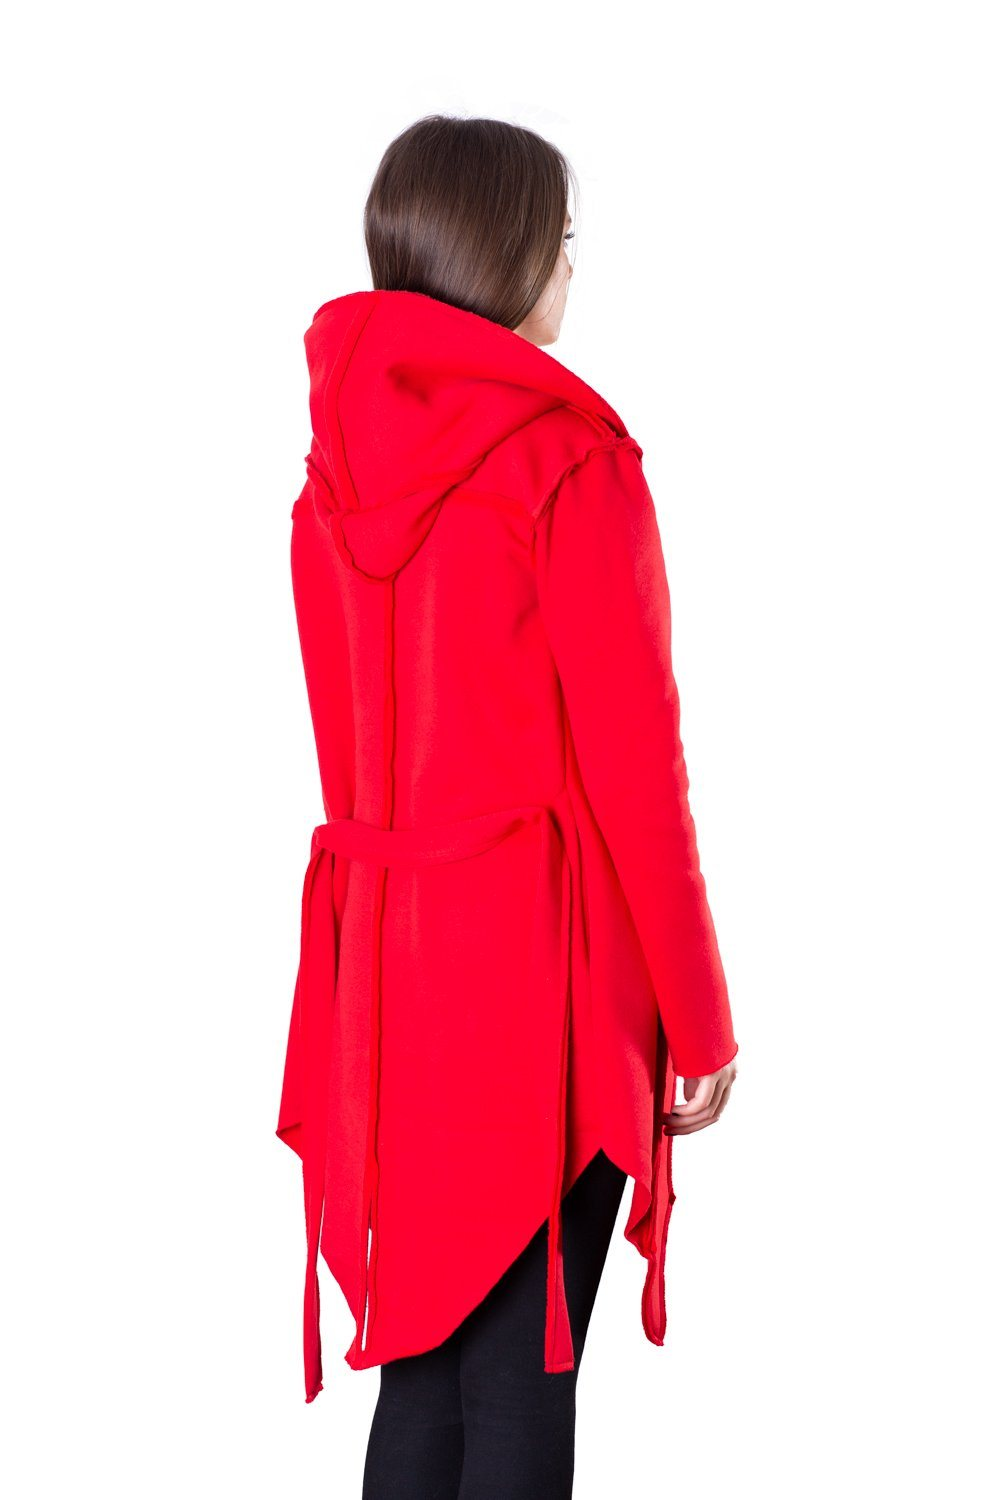 TheG Woman Designer Cardigan 2.0 // red